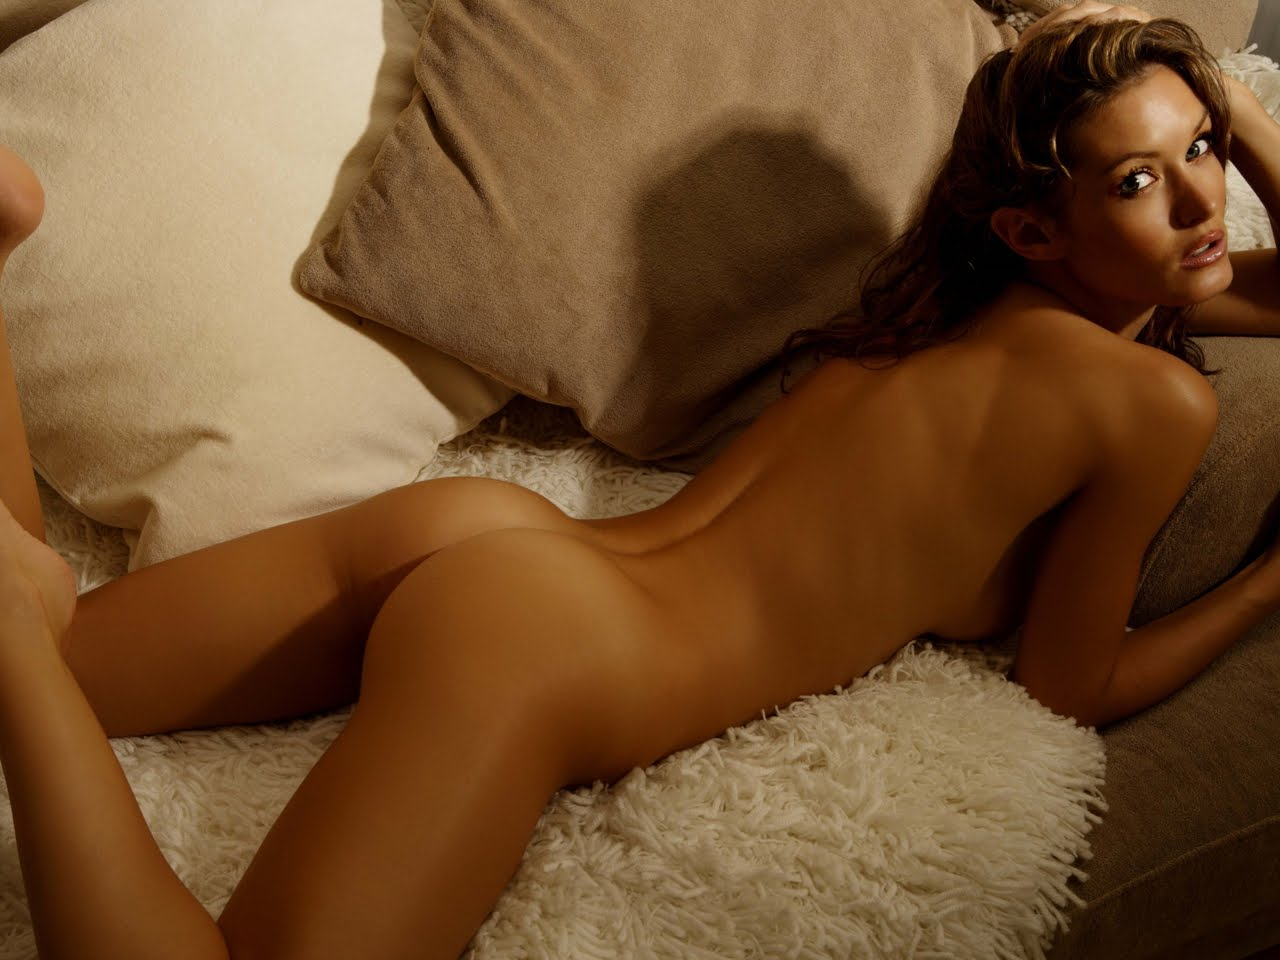 Sexual Pictures Of Ordinary Women 67